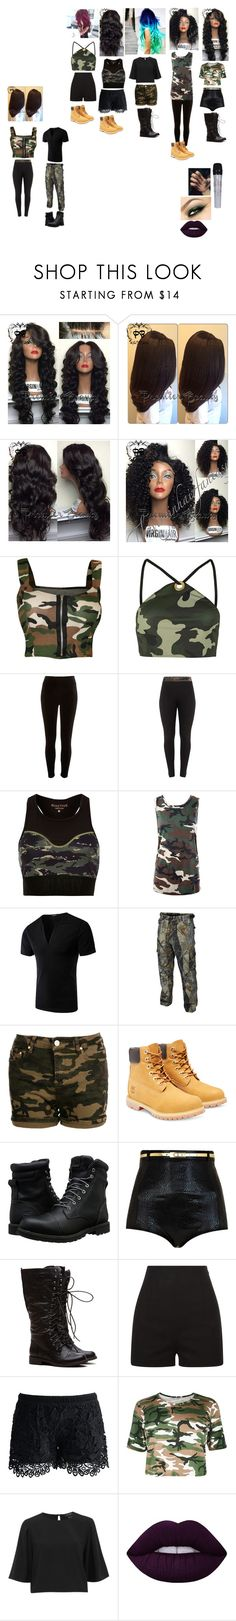 """""""the guardian angels camo wear with dancers"""" by the-guardian-angels on Polyvore featuring Garcia, Audio-Technica, WearAll, Topshop, River Island, Sans Souci, True Timber, Boohoo, Timberland and Chicwish"""